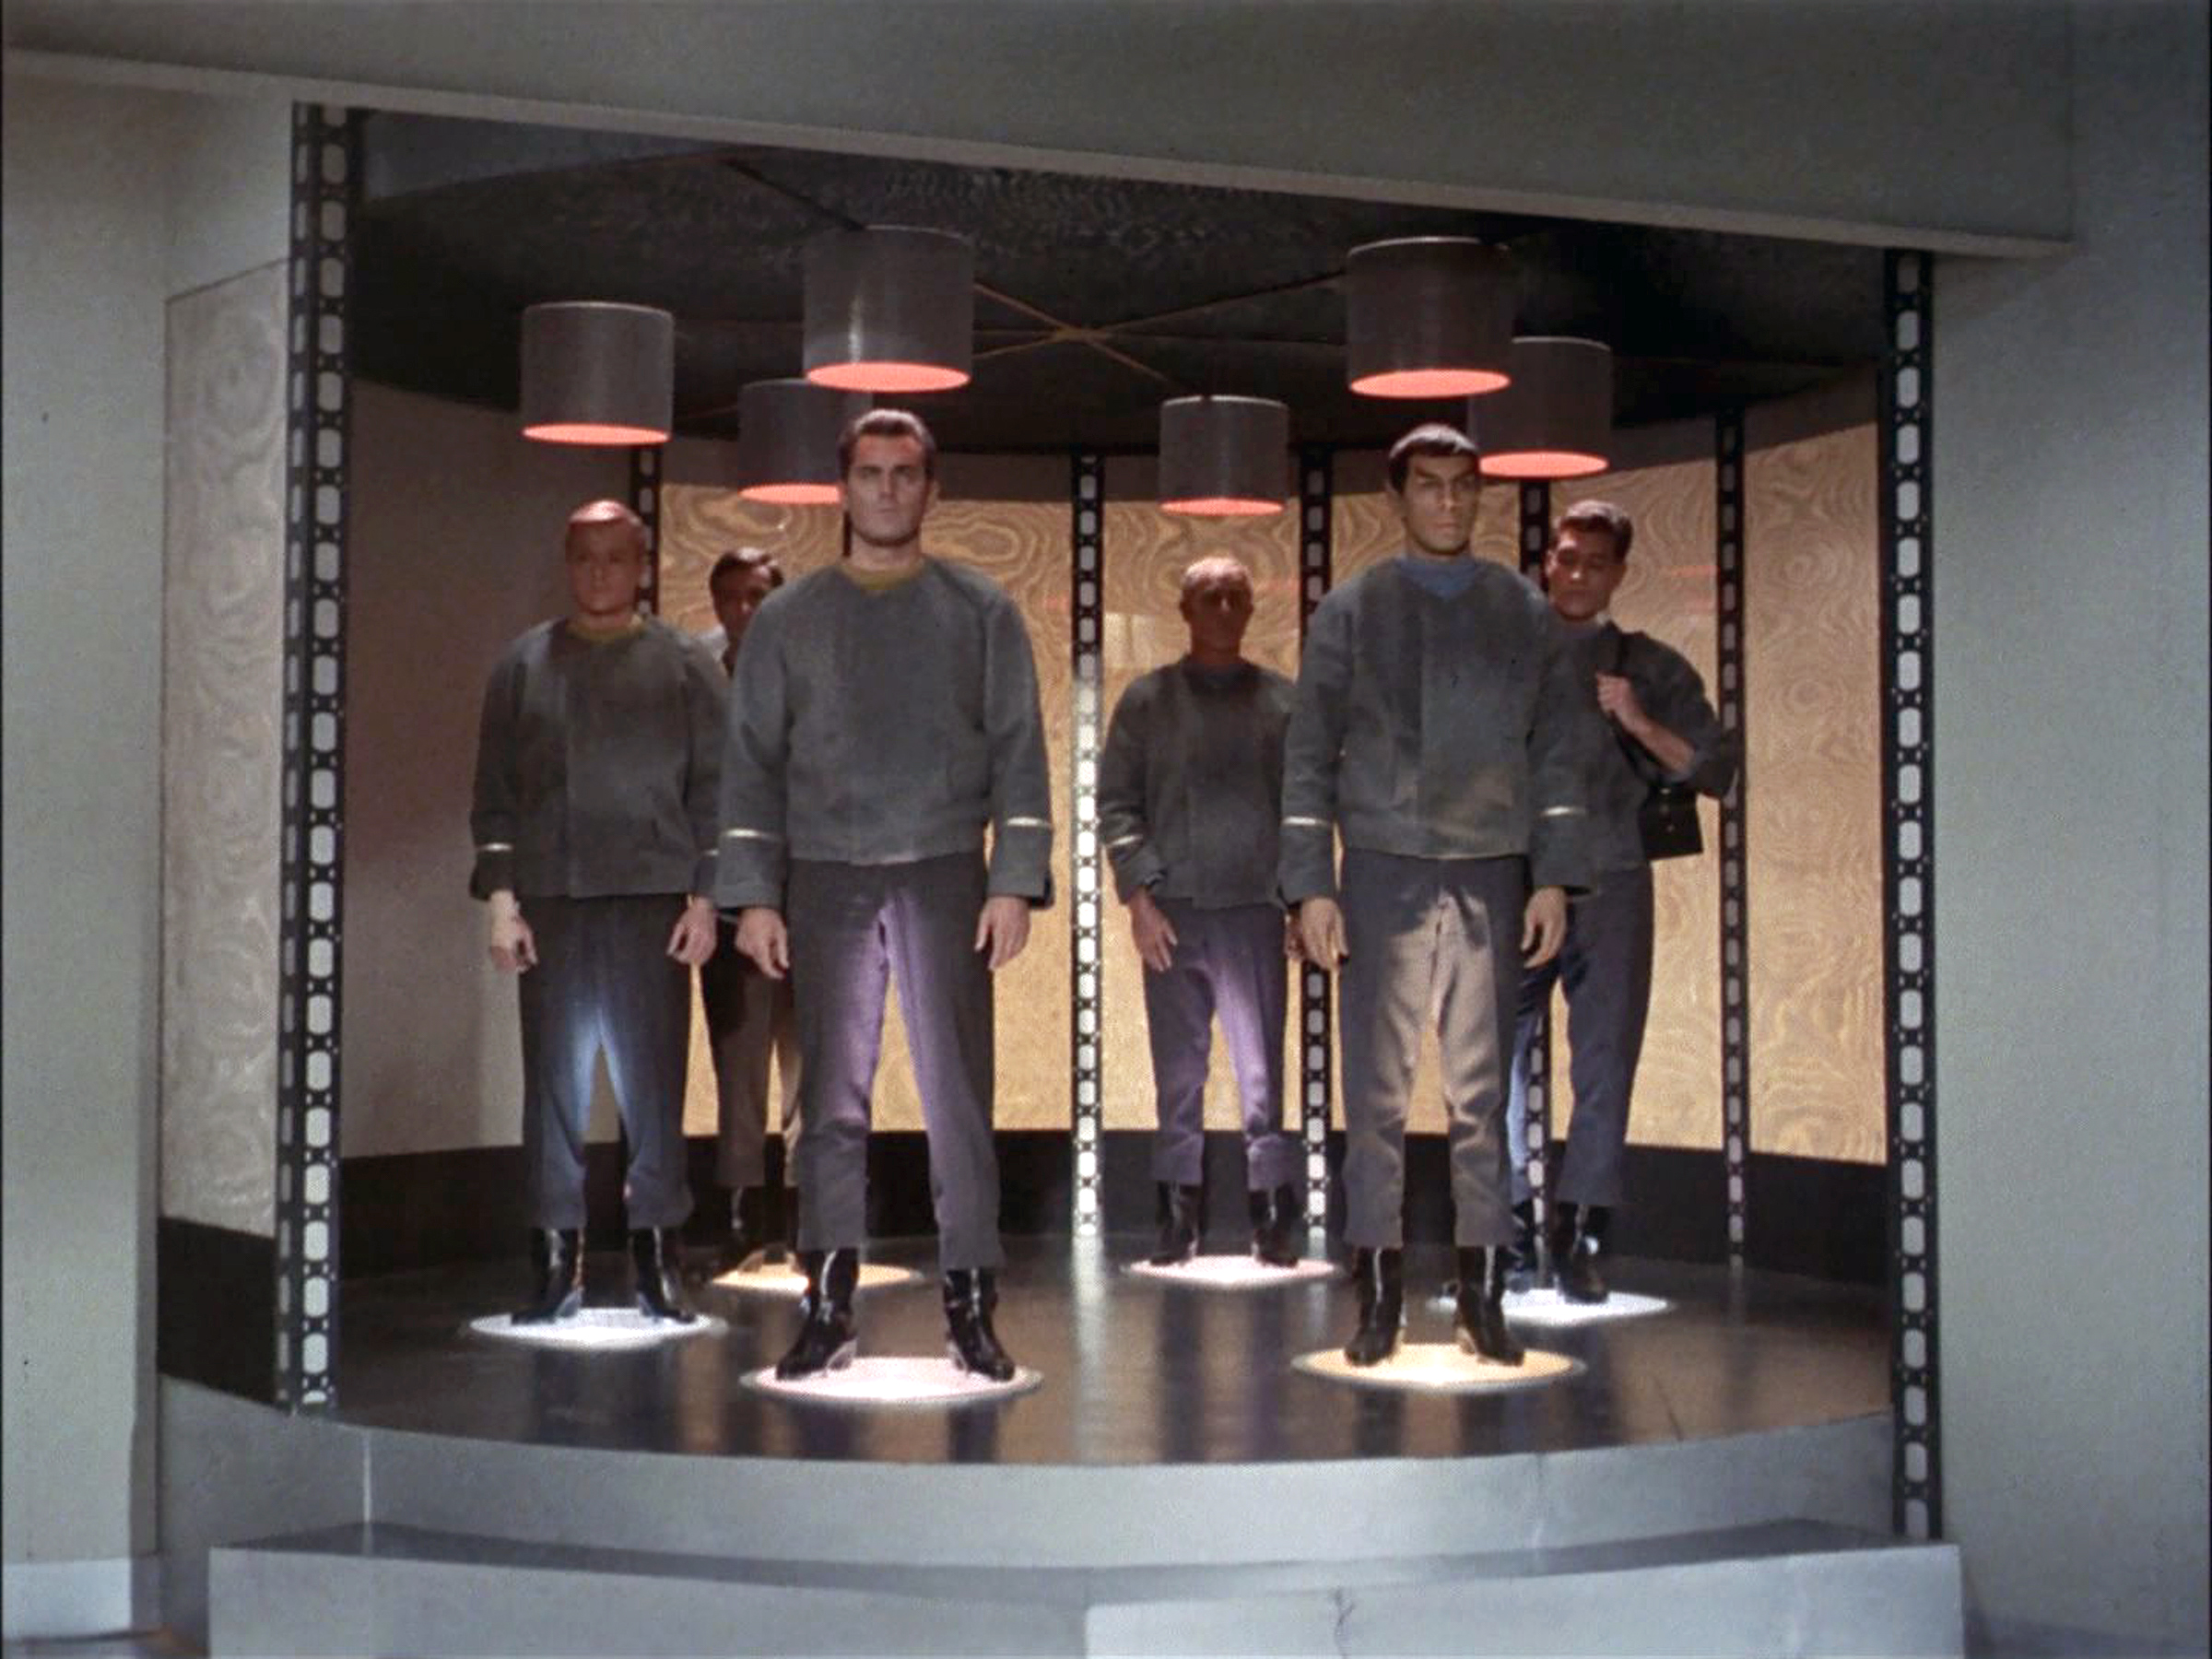 The crew of the USS Enterprise being transported. From left: Peter Duryea as Lieutenant José Tyler, Adam Roarke as Communications Officer Garison, Jeffrey Hunter as Captain Christopher Pike, John Hoyt as Dr. Phillip Boyce, Leonard Nimoy as Mr. Spock and Ed Madden as the Enterprise Geologist.